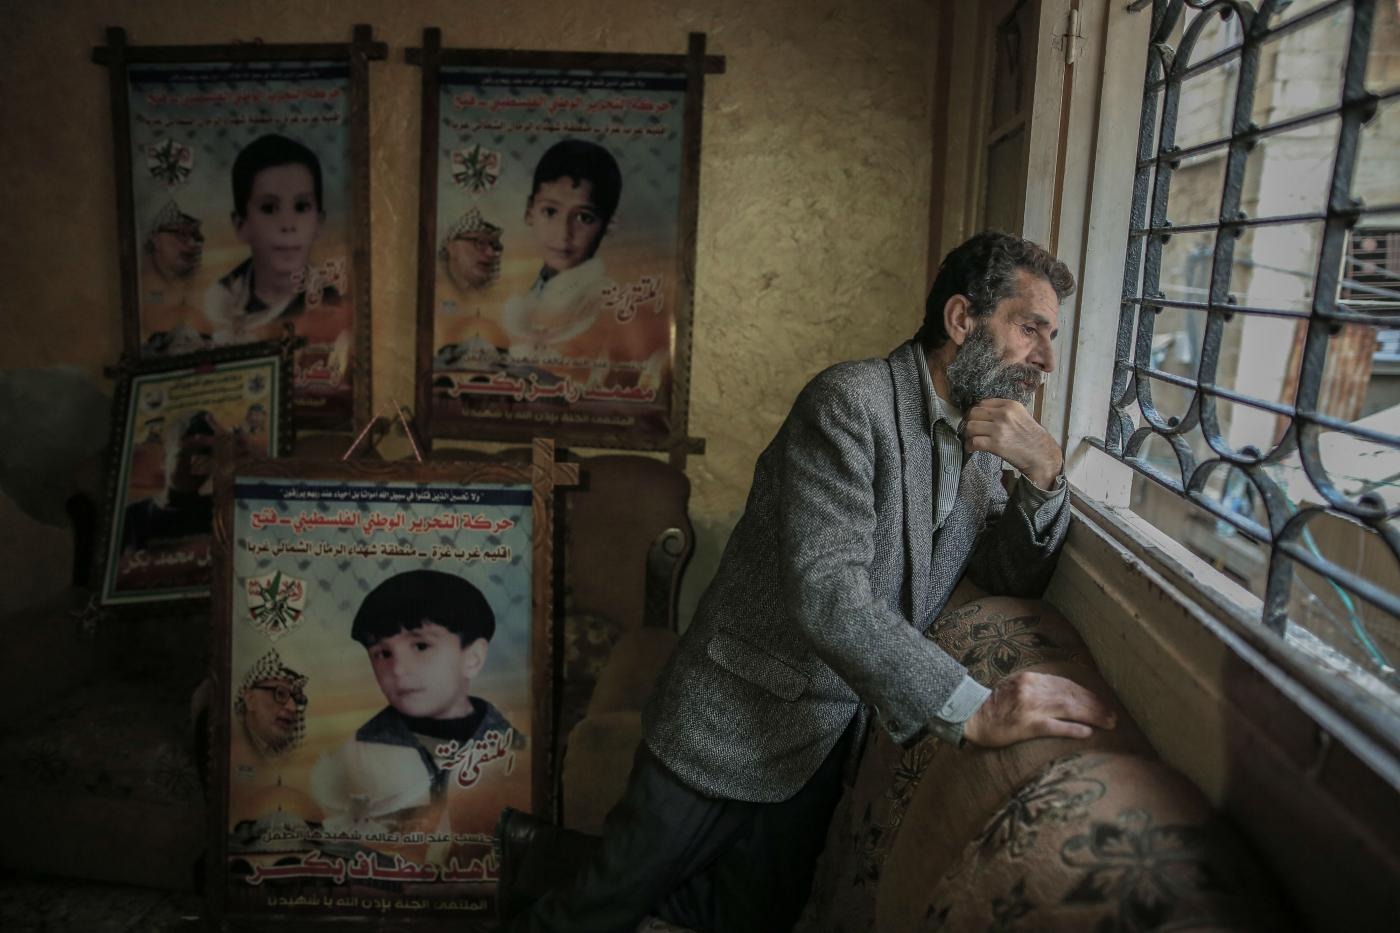 Some crimes speak for themselves: ICC probe brings back raw memories in Gaza